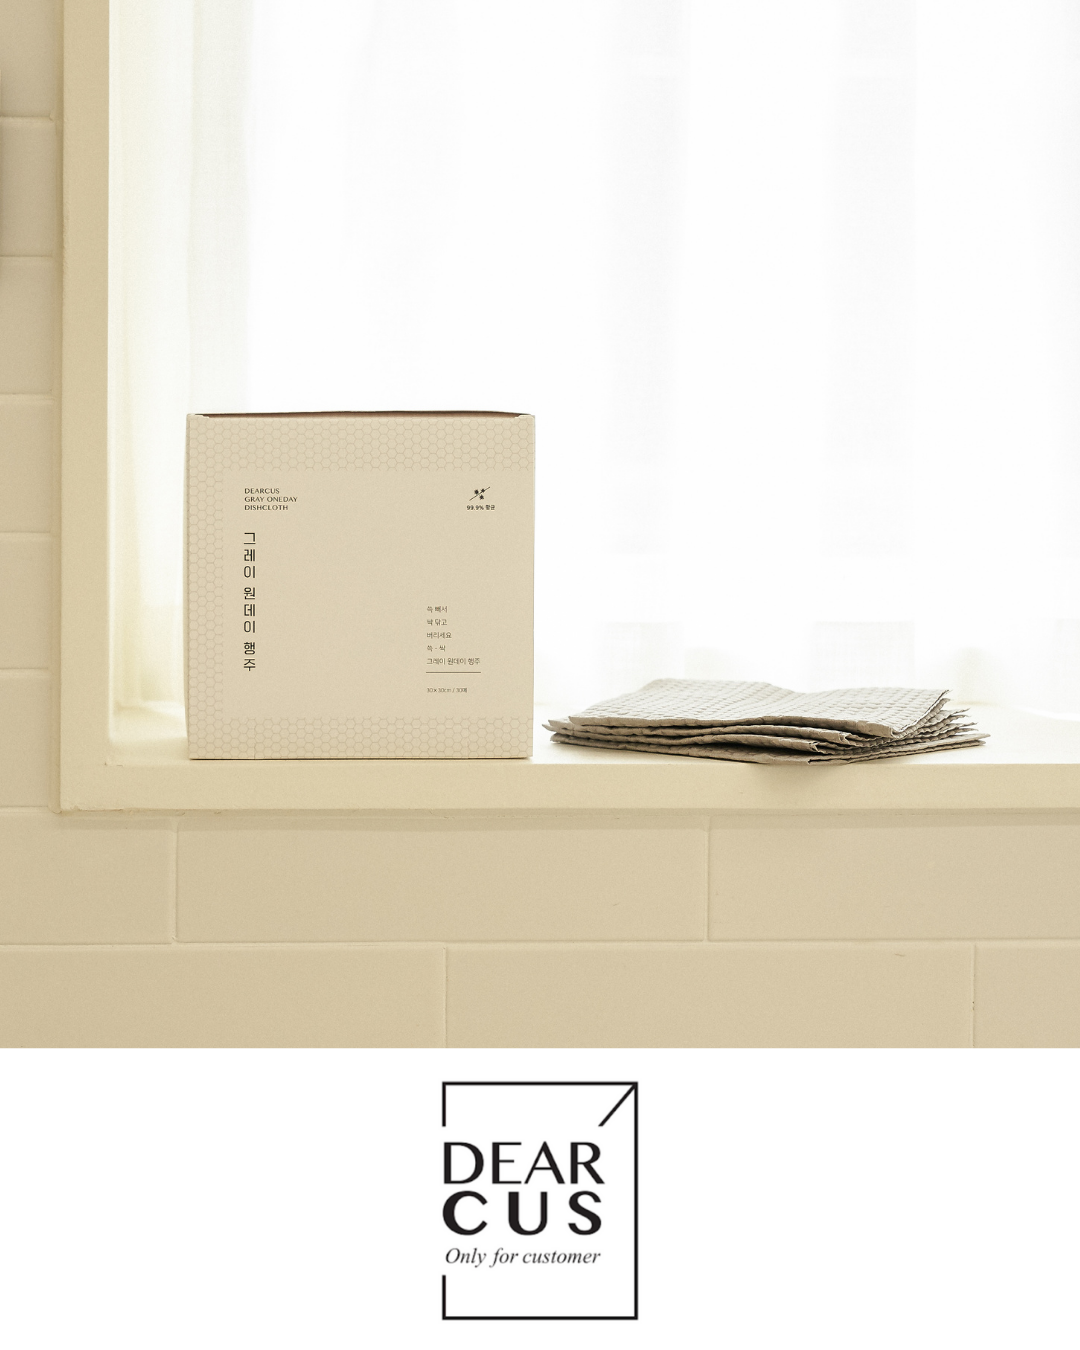 Dearcus ONEDAY Multiuse Kitchen Towel Napkin Box displayed on the window sill of a white tiled bathroom